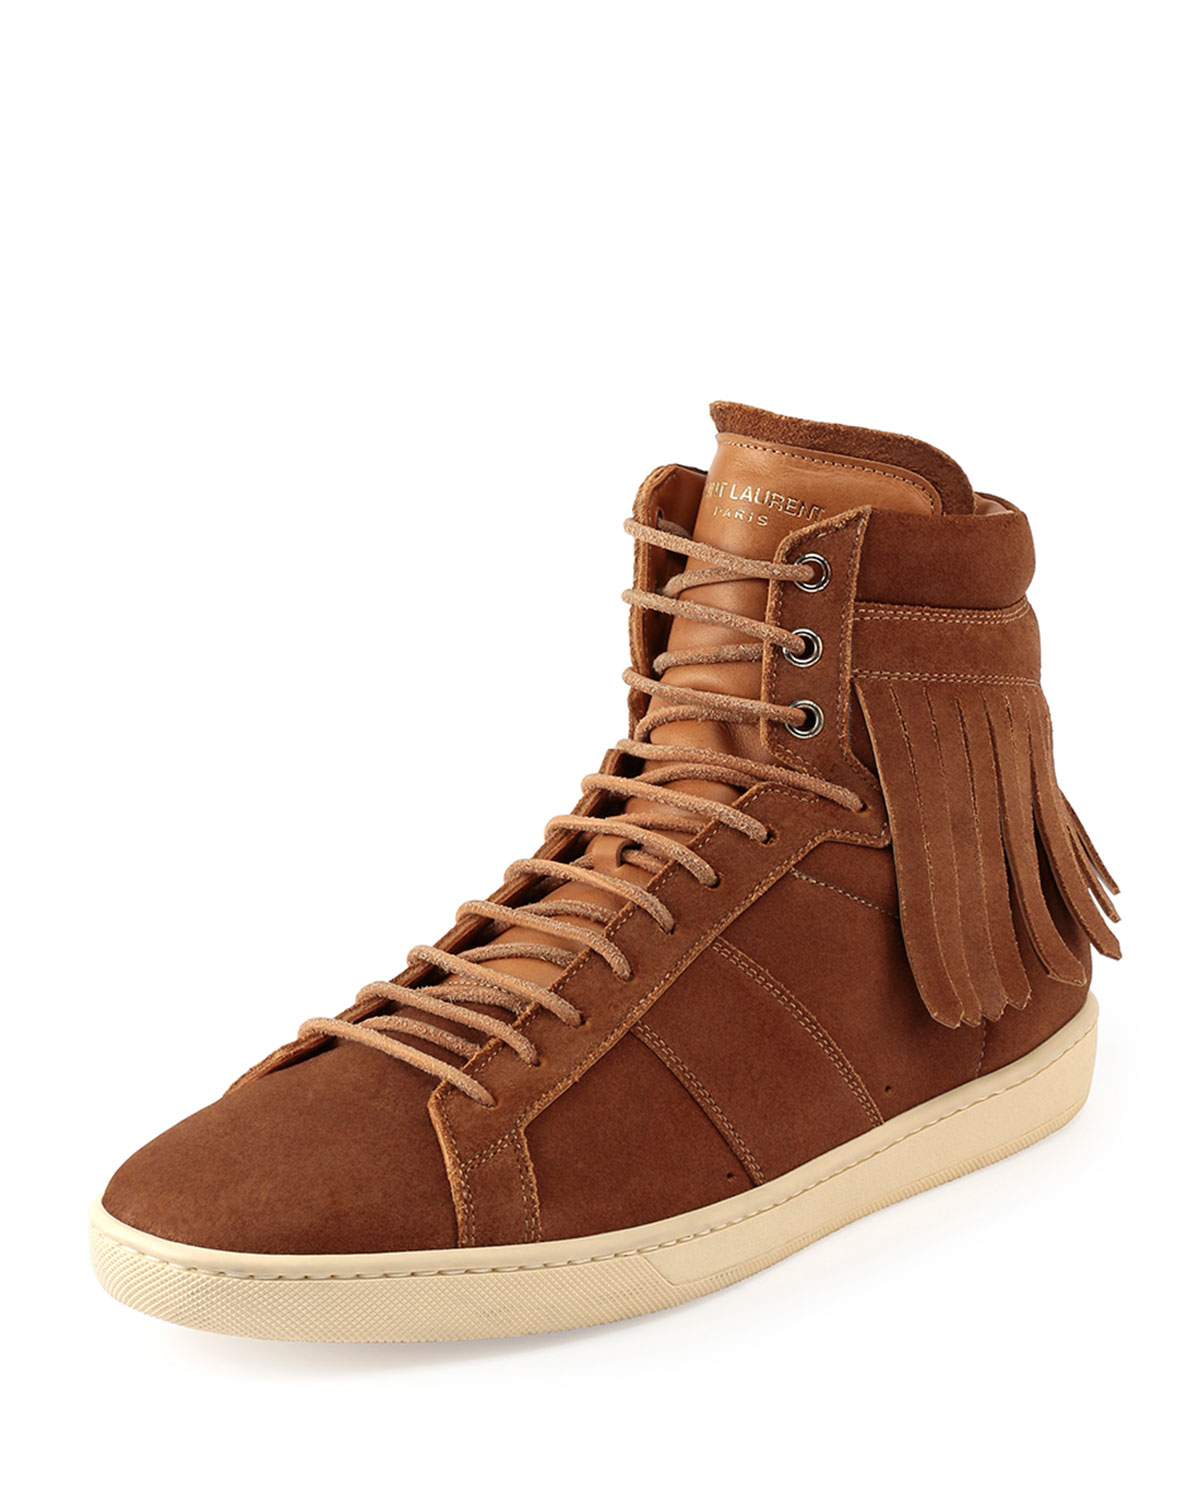 Saint Laurent Fringed High-Top Sneakers In Brown